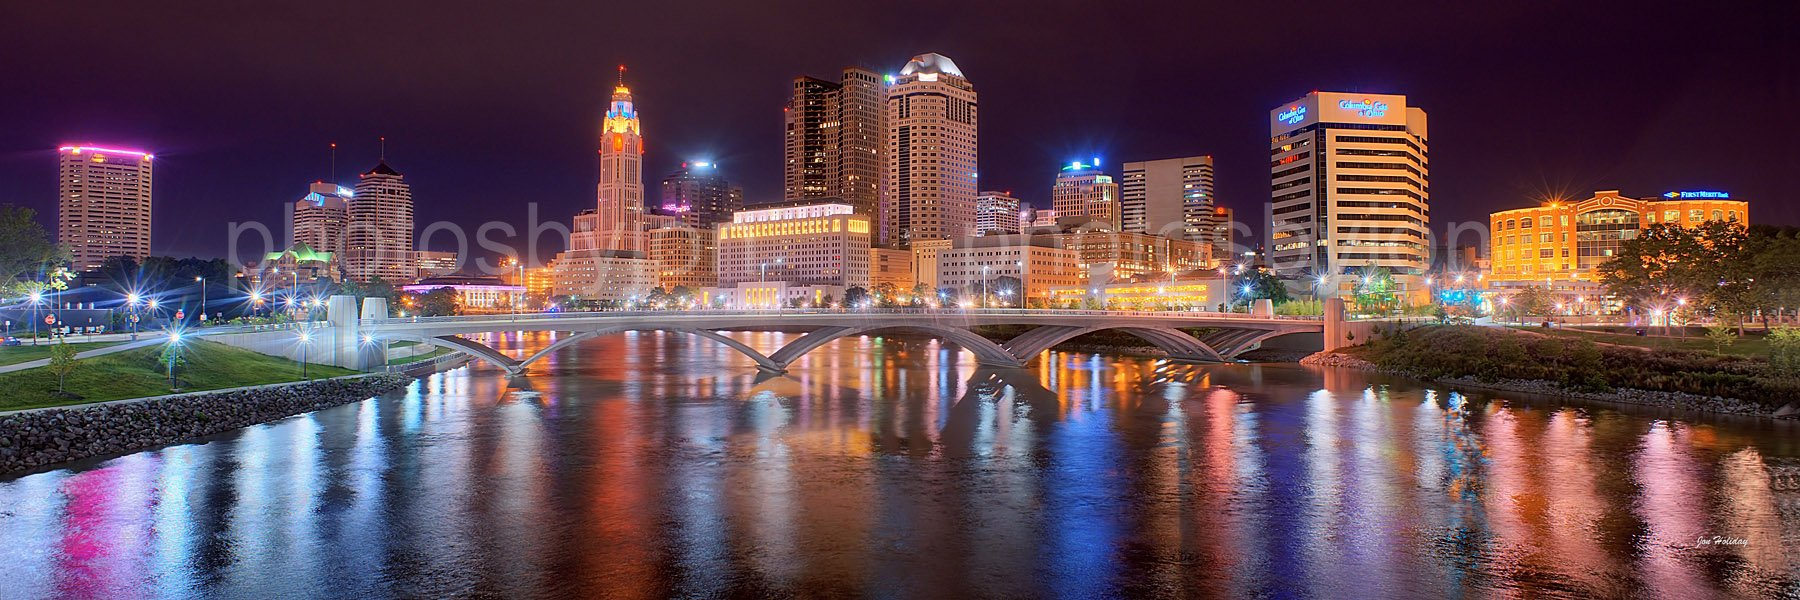 Columbus Skyline PHOTO PRINT UNFRAMED NIGHT Color City Downtown 11.75 inches x 36 inches Ohio Photographic Panorama Poster Picture Standard Size by photosbyjon